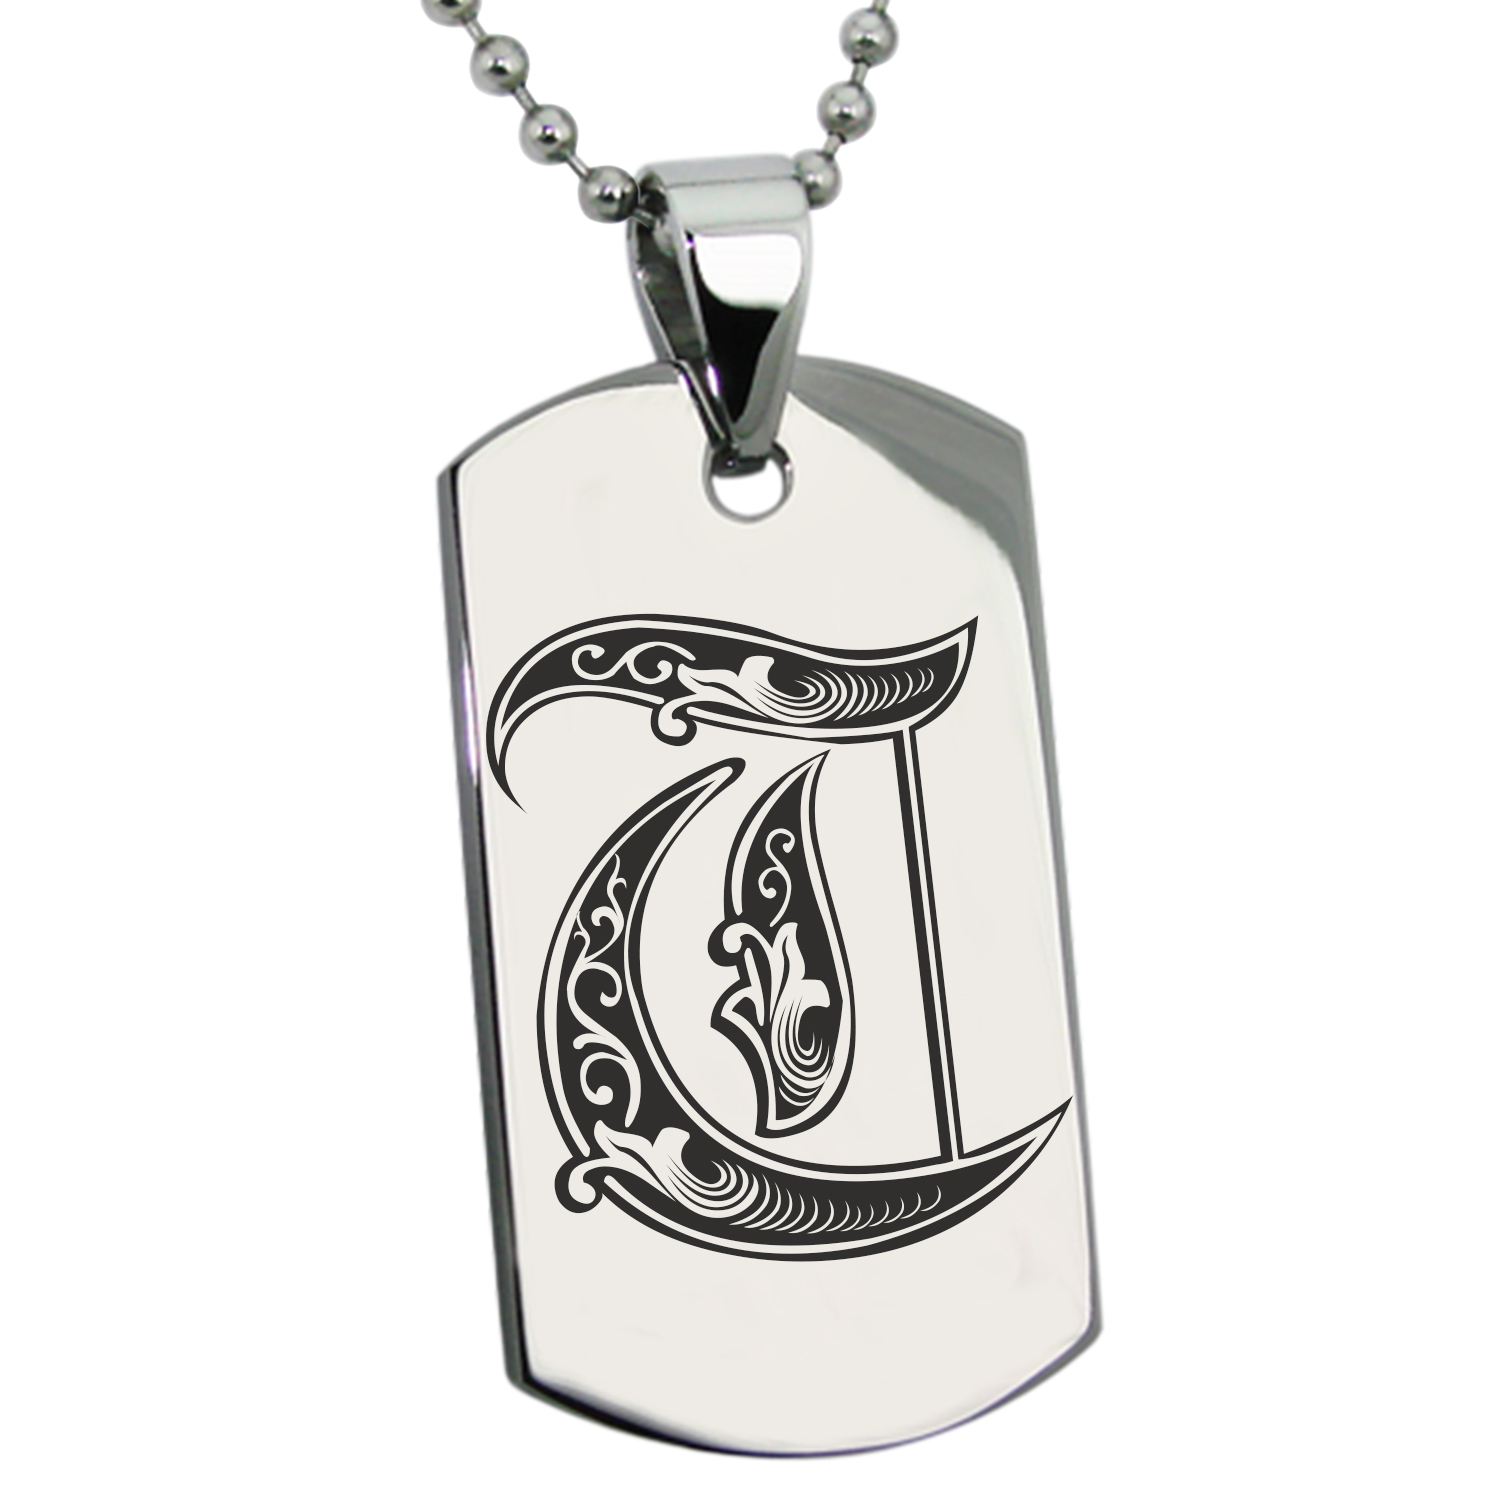 Stainless Steel Letter T Initial Royal Monogram Engraved Dog Tag Pendant